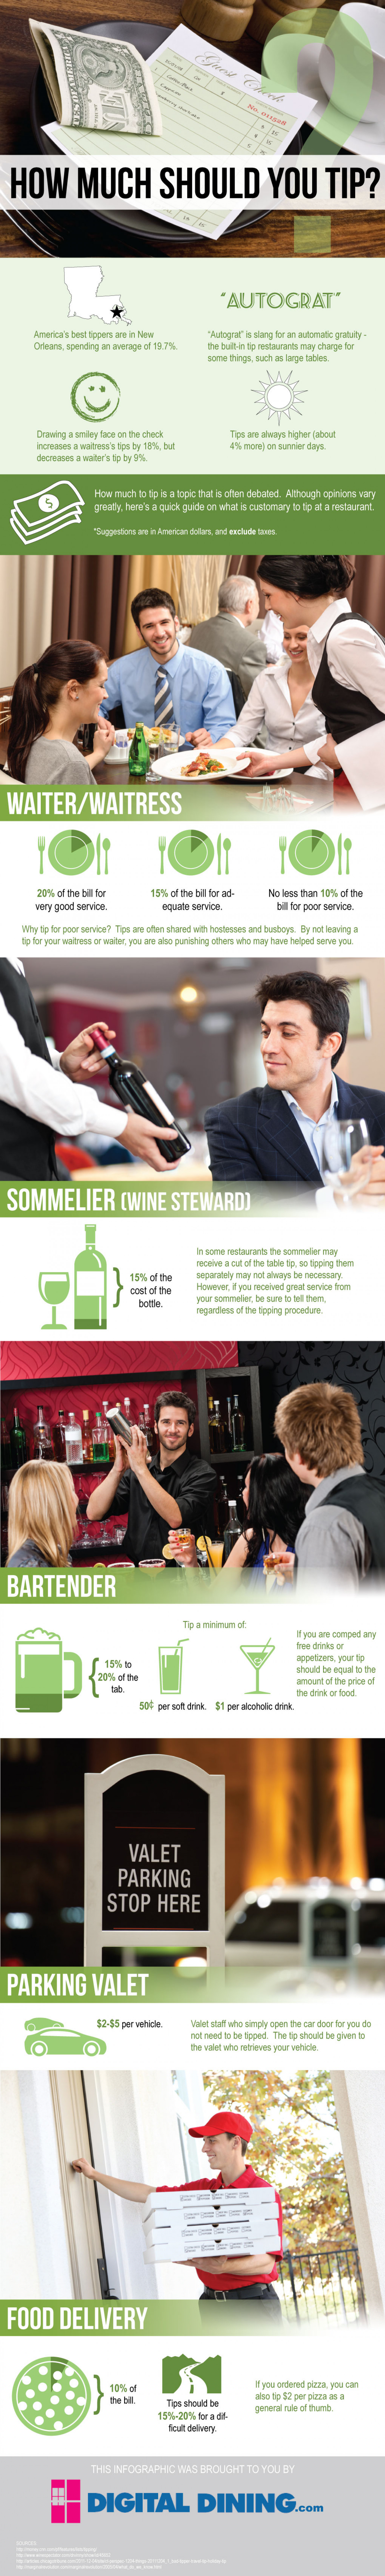 How much should you Tip?  Infographic